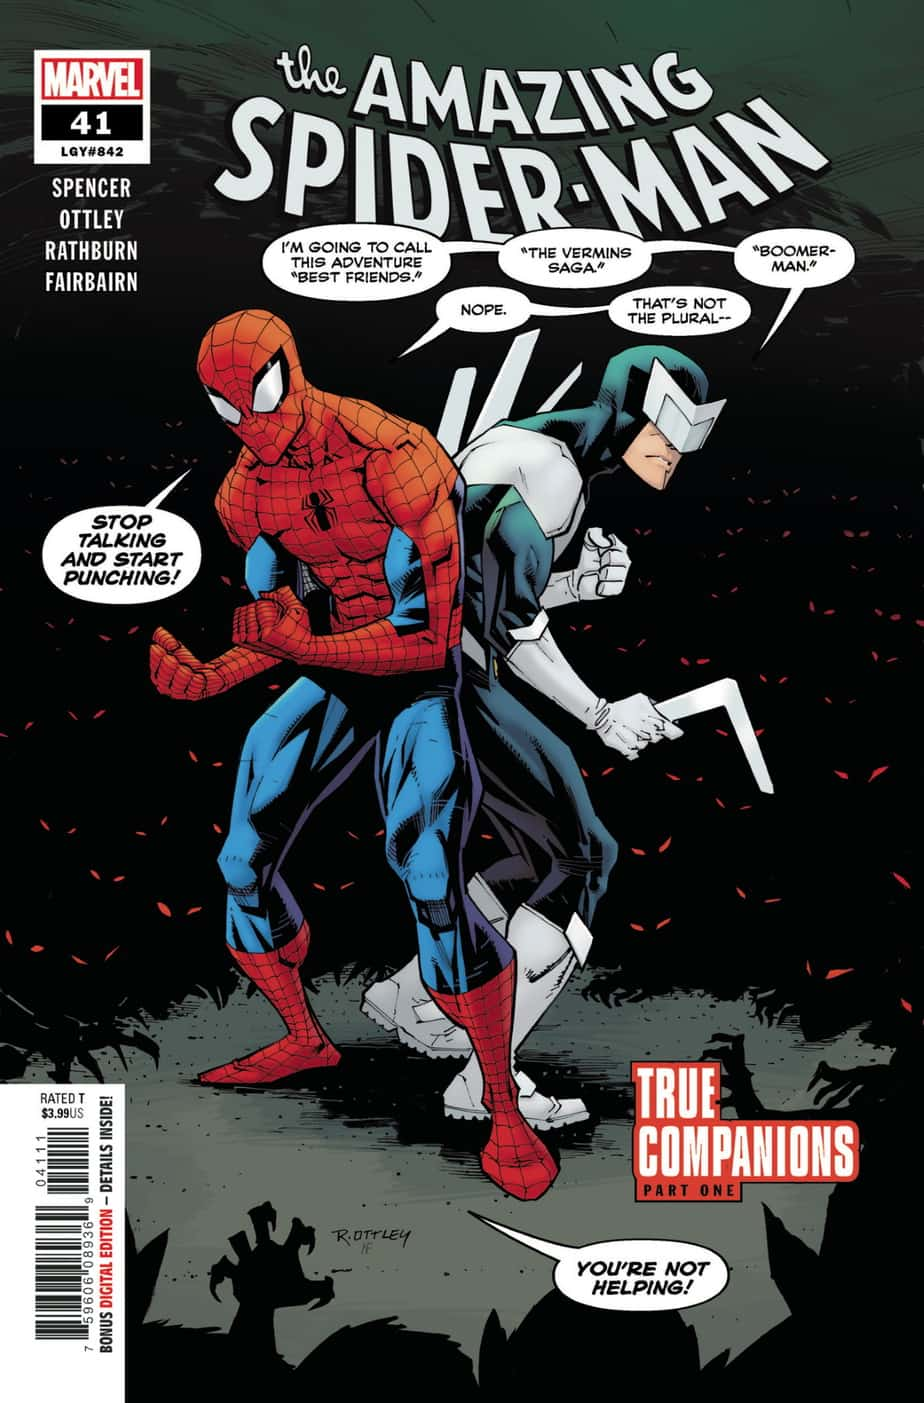 AMAZING SPIDER-MAN #41 - Cover A